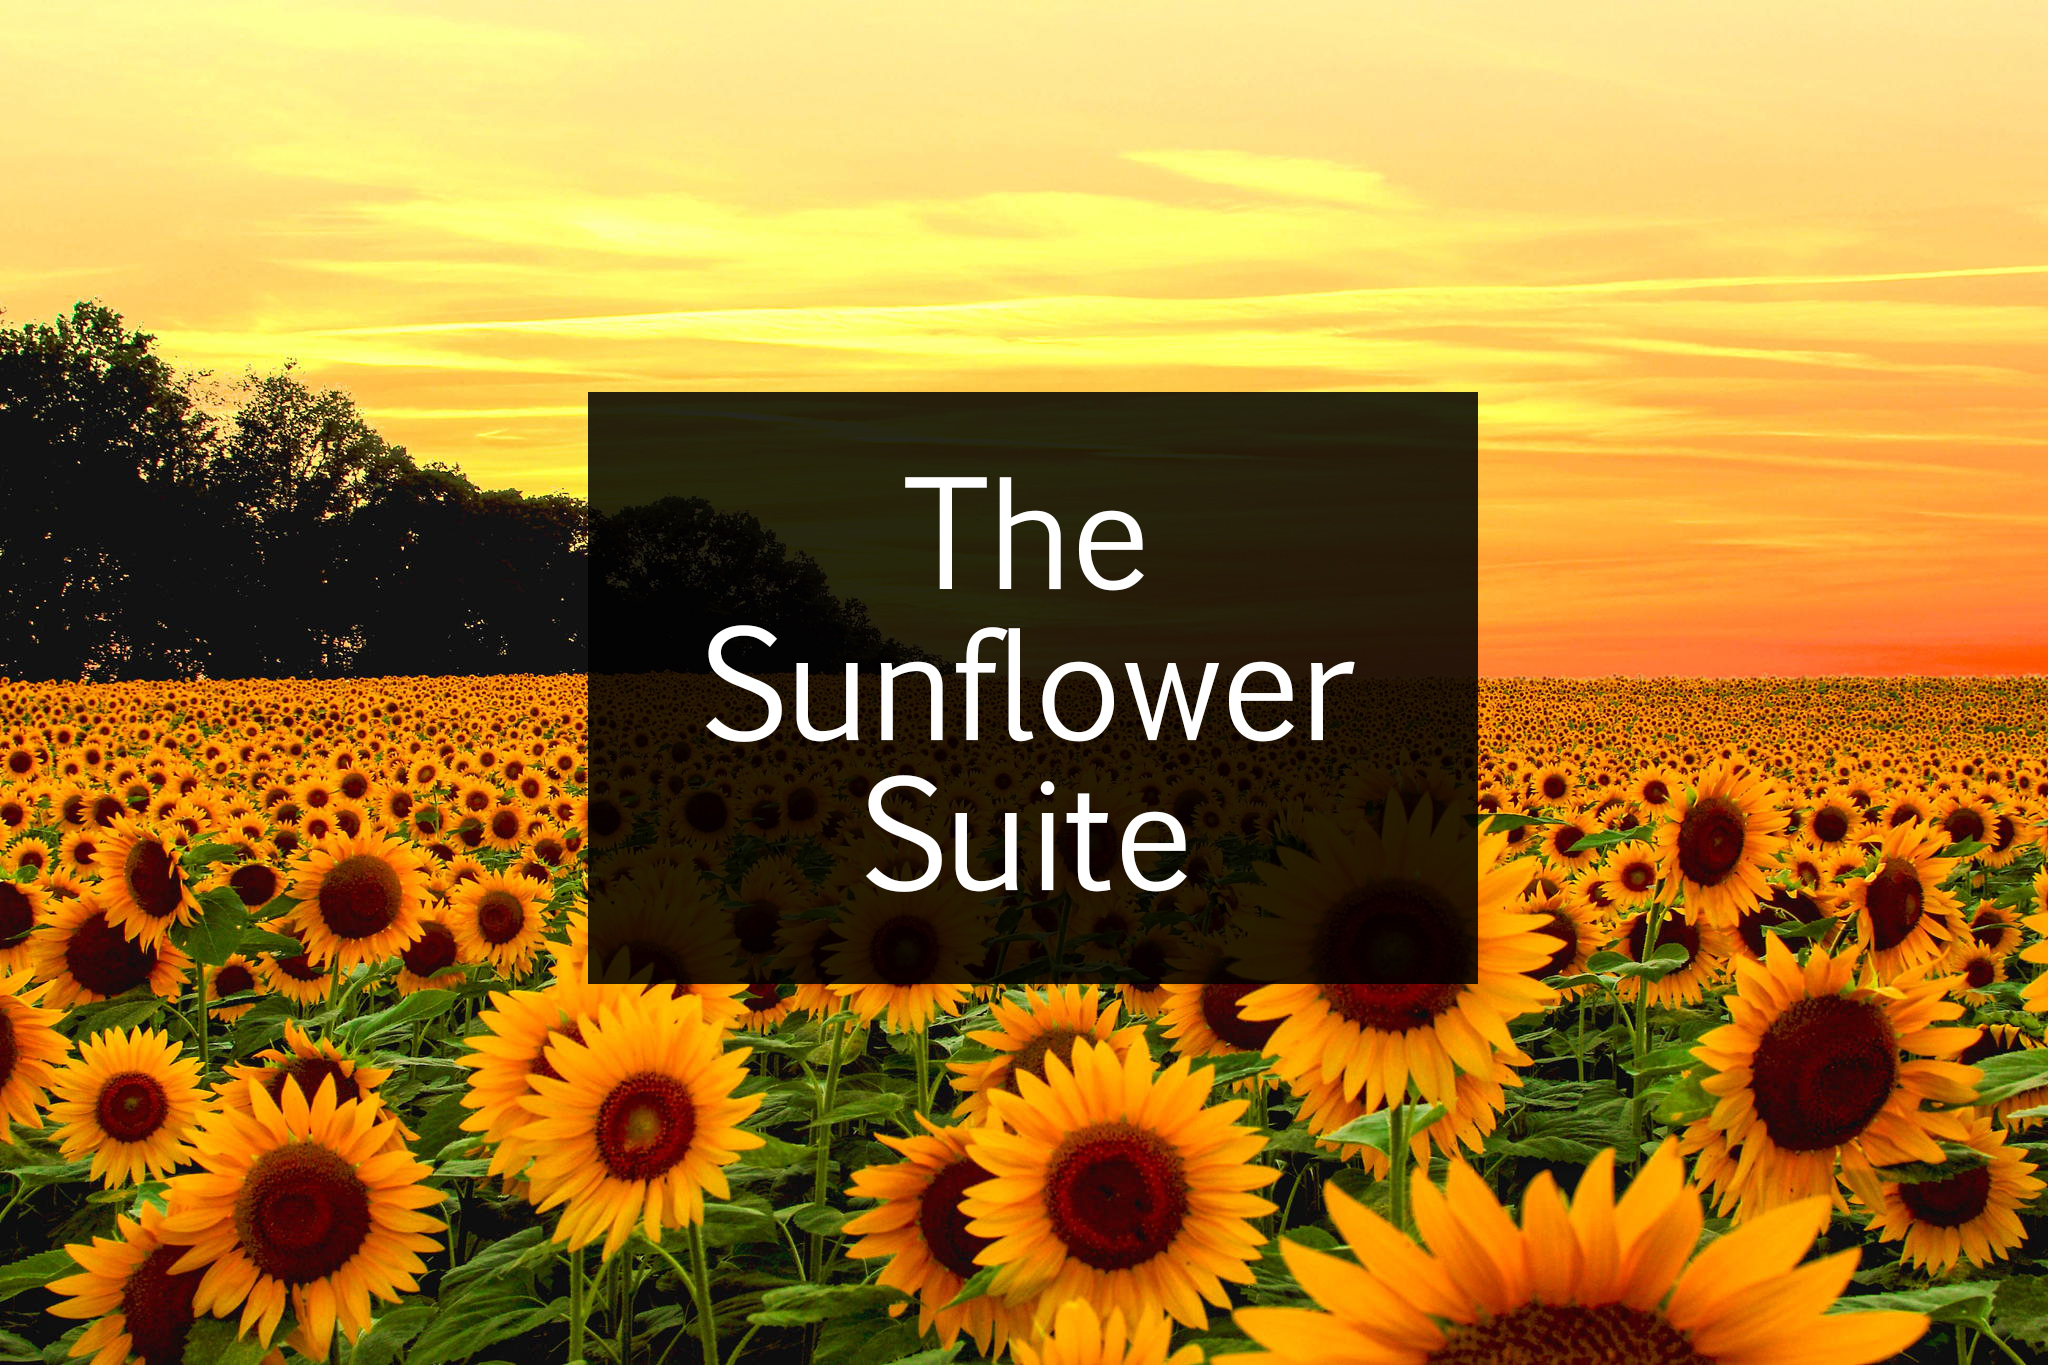 The Sunflower Suite